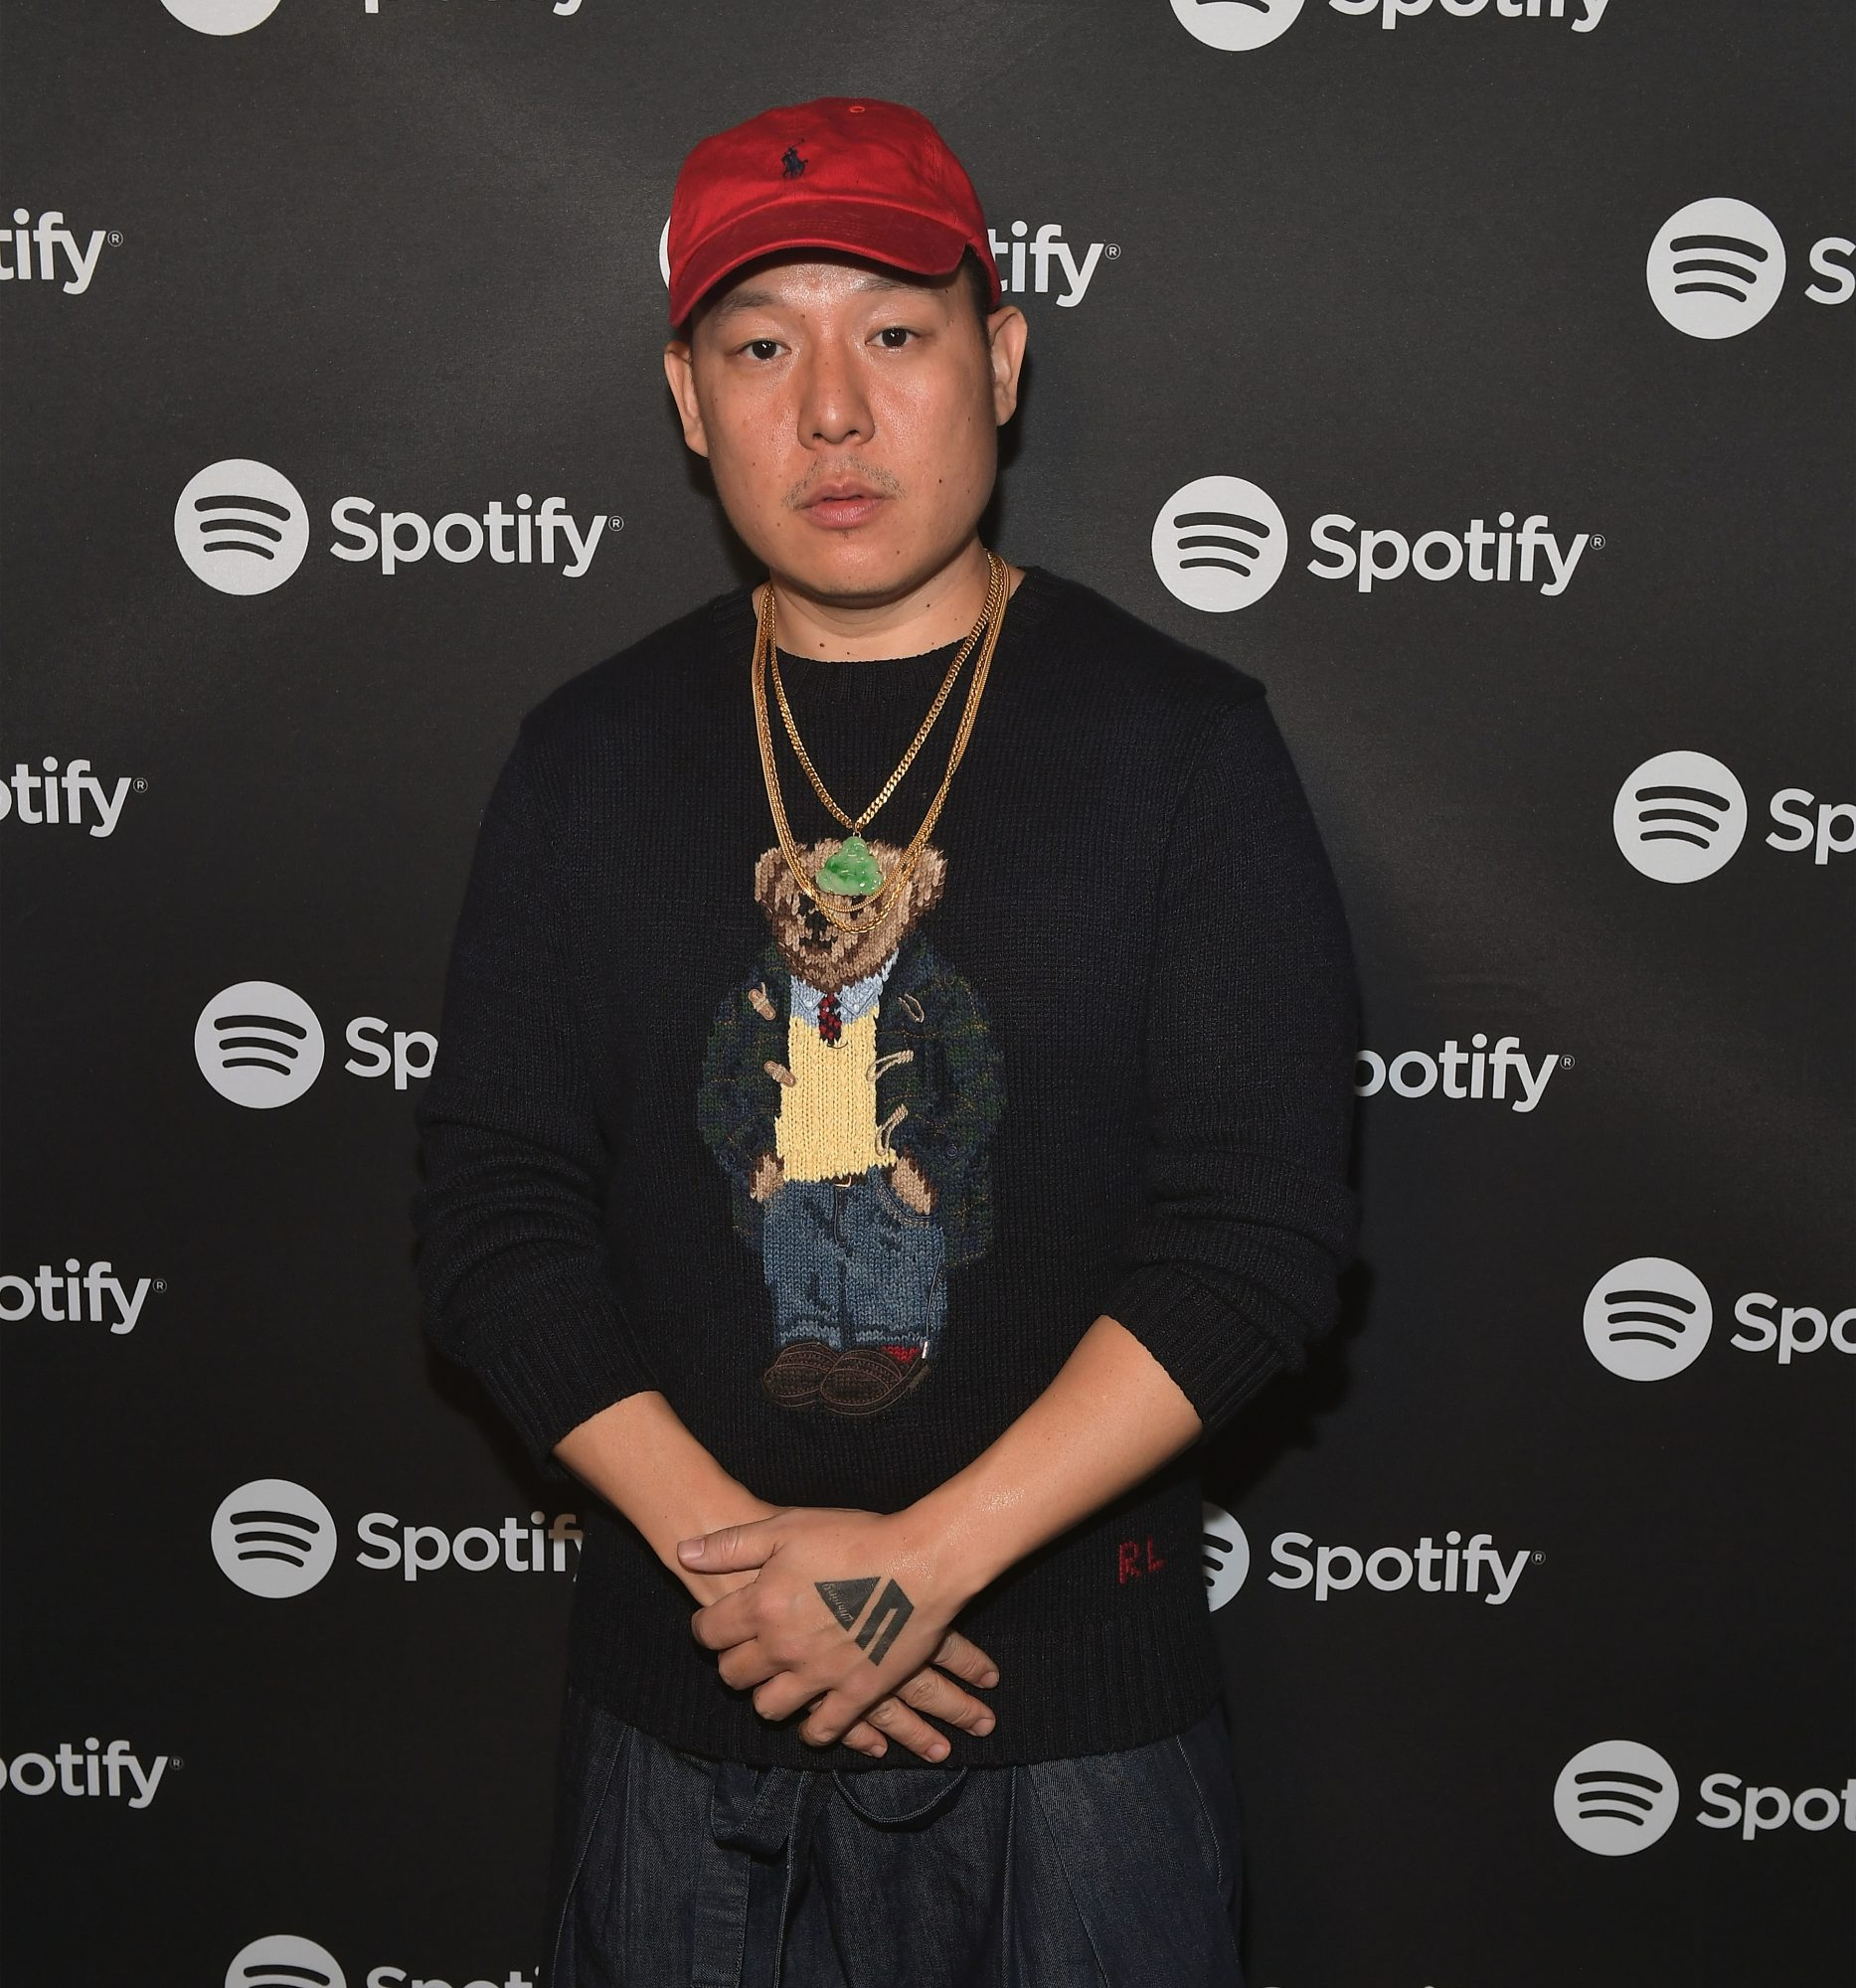 Spotify Supper at CES featuring Eddie Huang and Wiz Khalifa